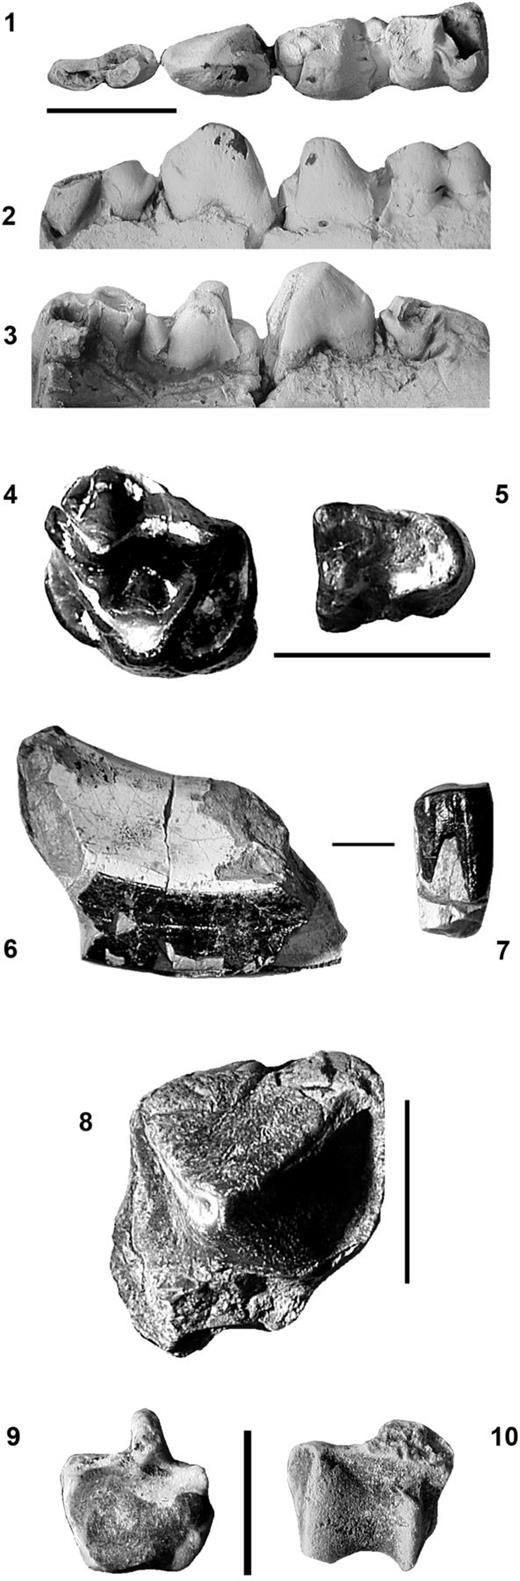 (1–3) FOBU 6205, Palaeosinopa lacus n. sp. (Holotype),